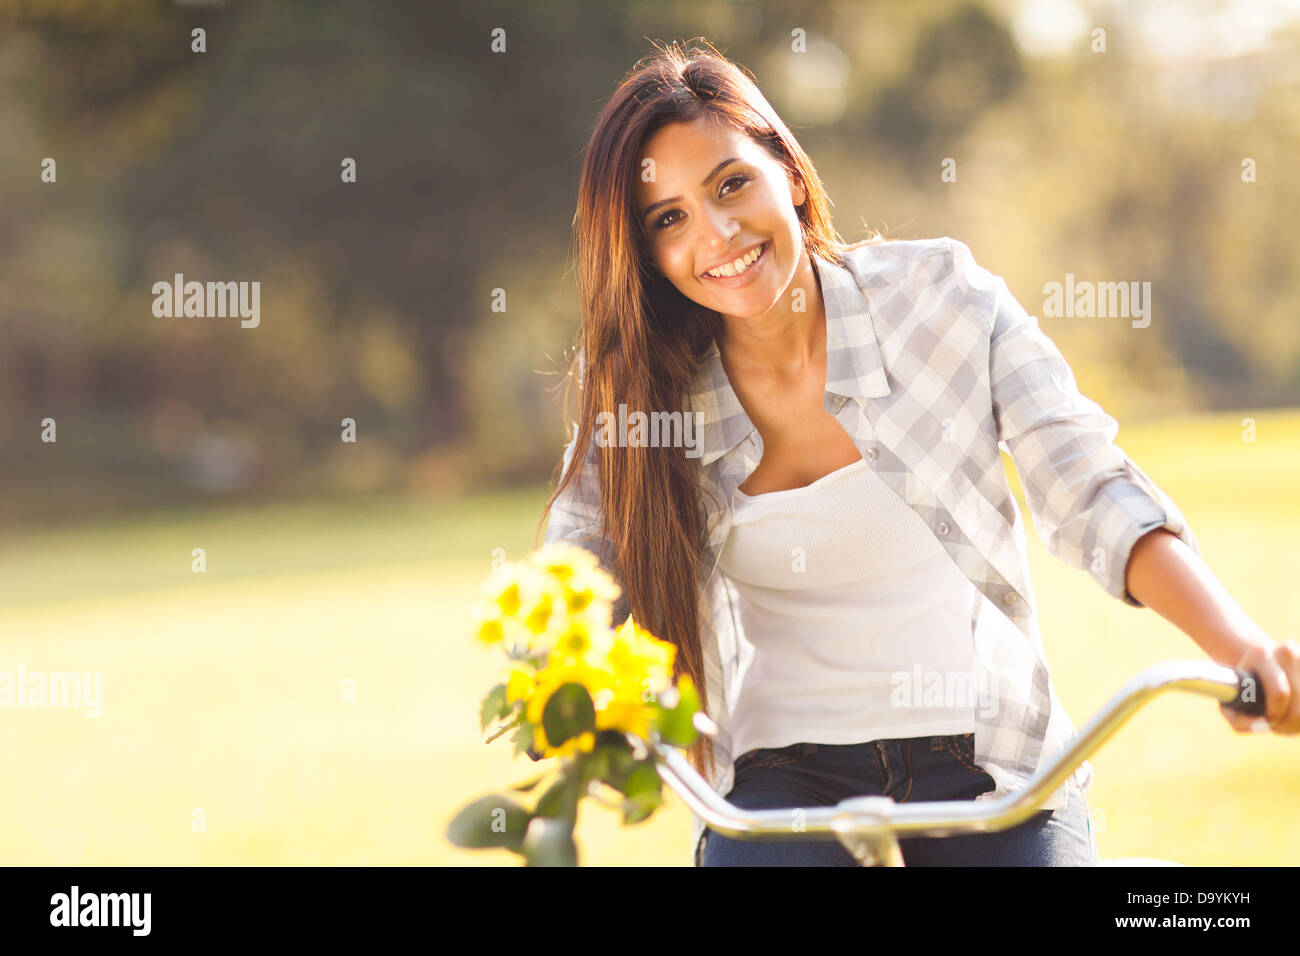 Beautiful woman with flowers riding a bicycle in a park stock stock photo beautiful woman with flowers riding a bicycle in a park dhlflorist Gallery